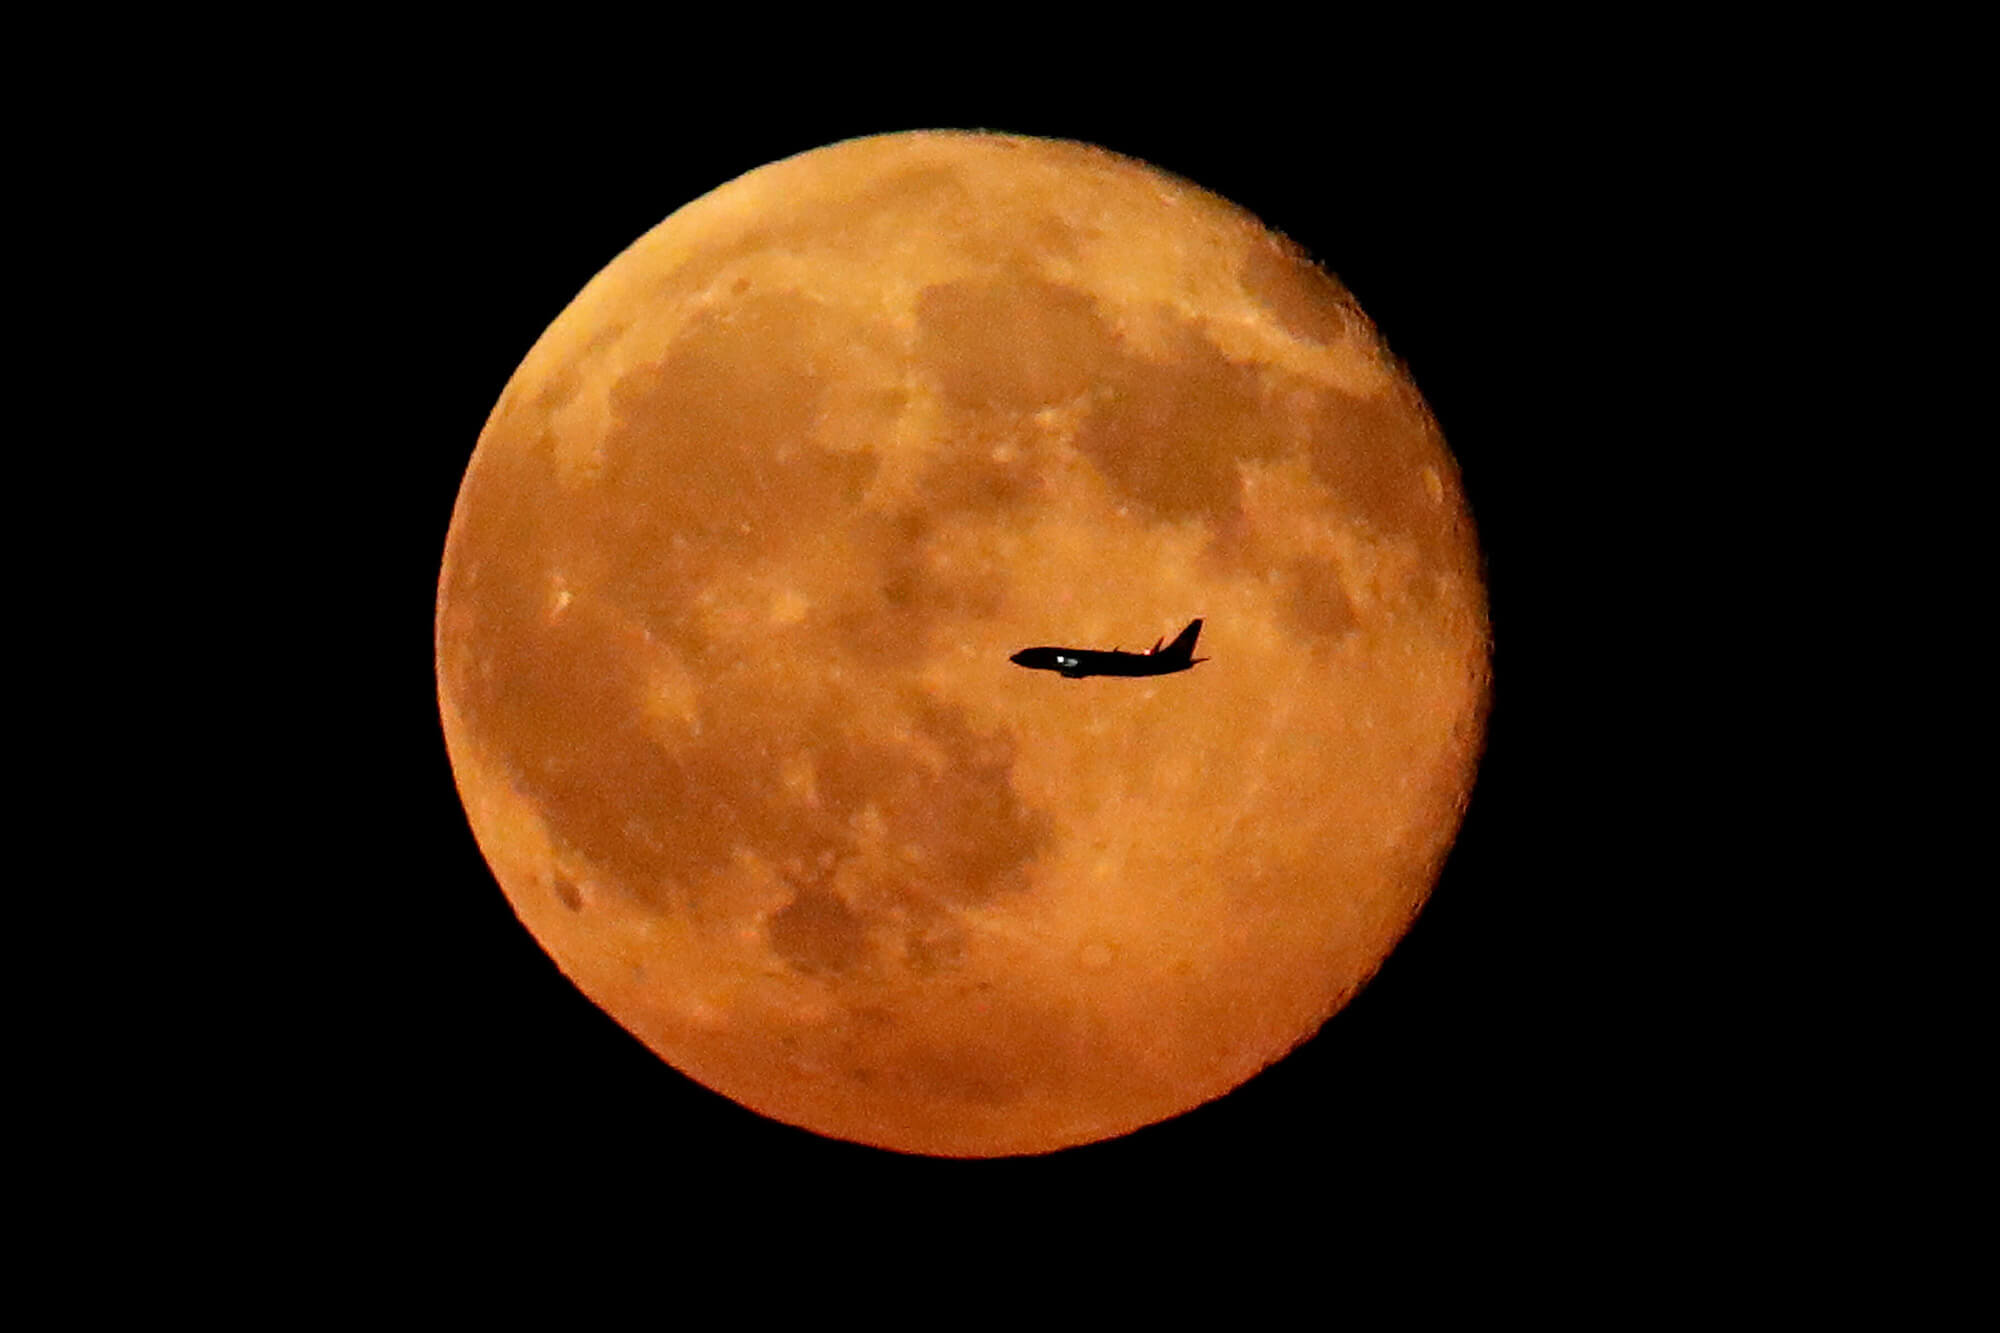 Image of the moon with plane in front of it.